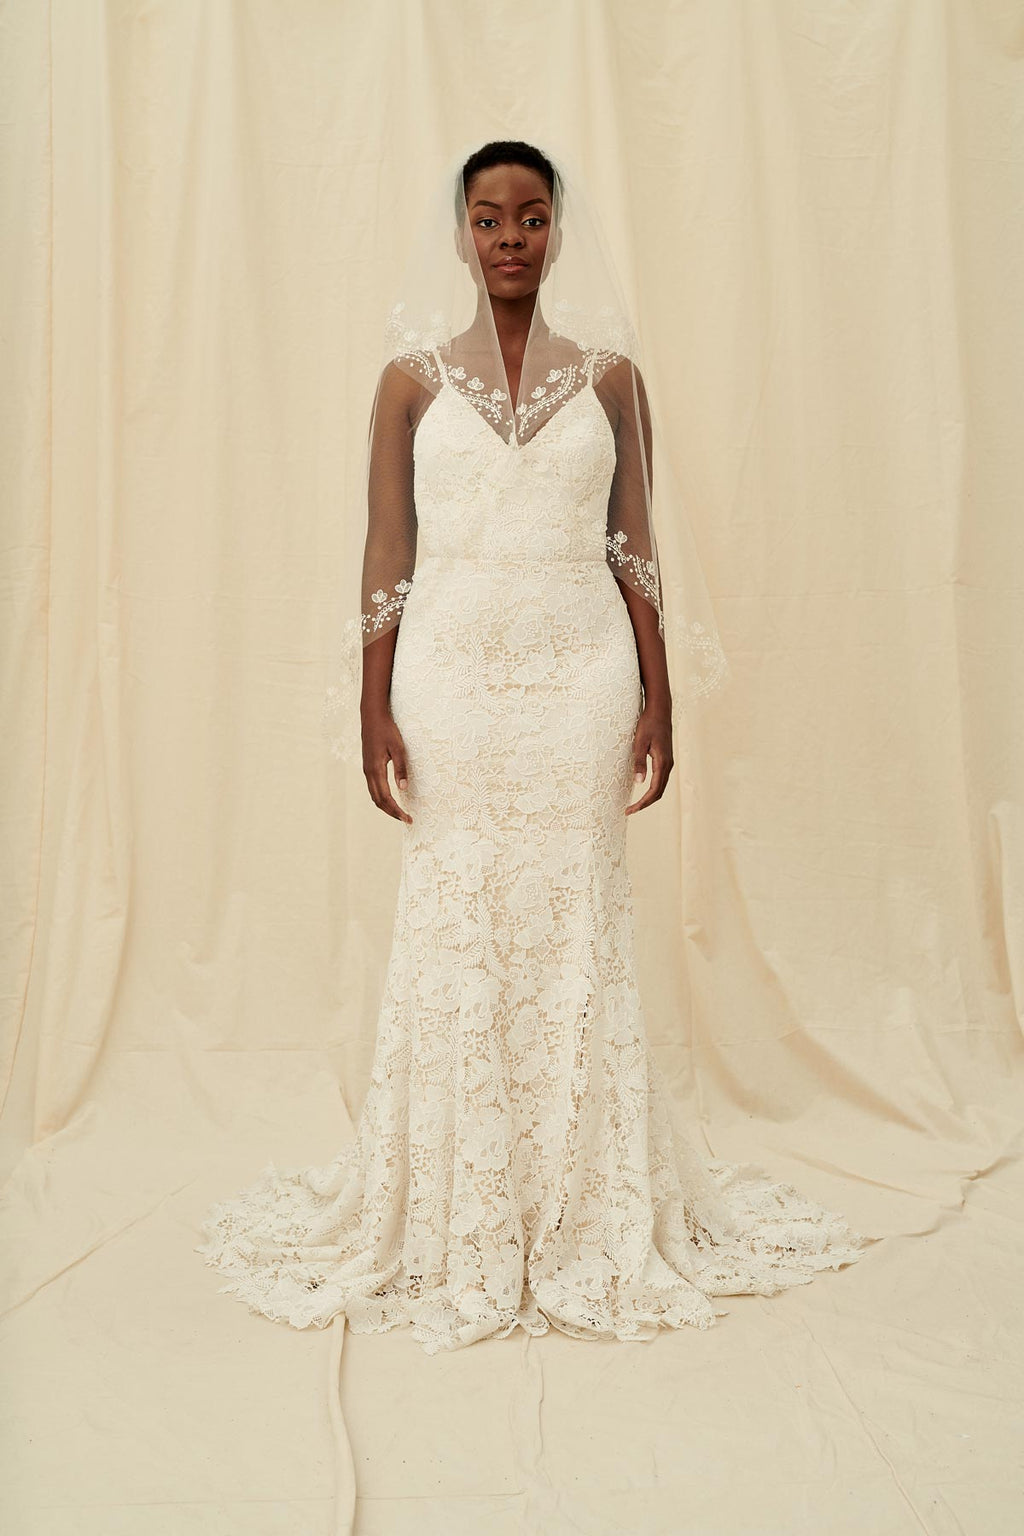 A classic veil with a short blusher and floral embroidery and no trim